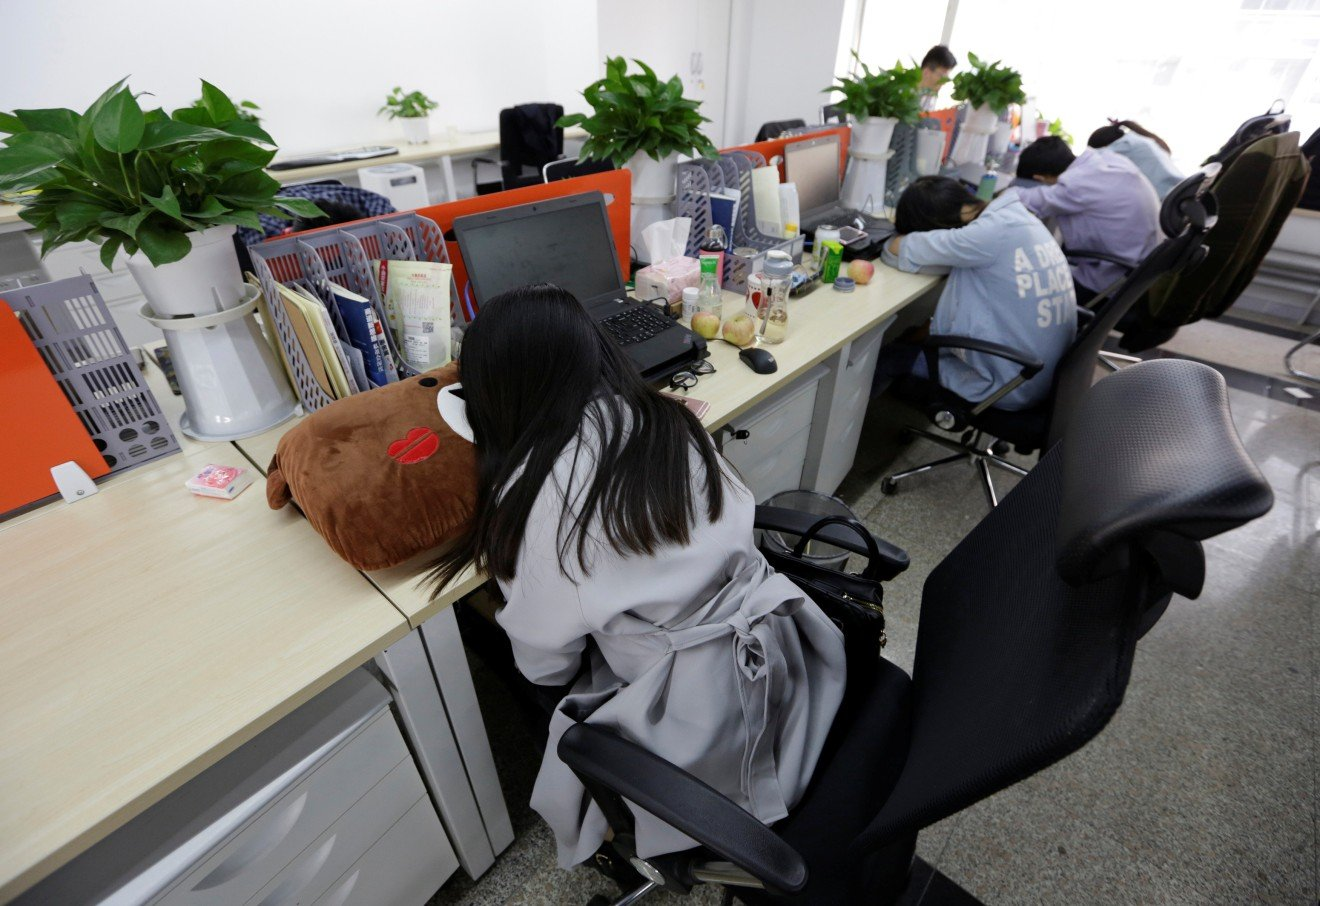 Employees of Goopal Group, a fintech company in Beijing, nap at their desks.